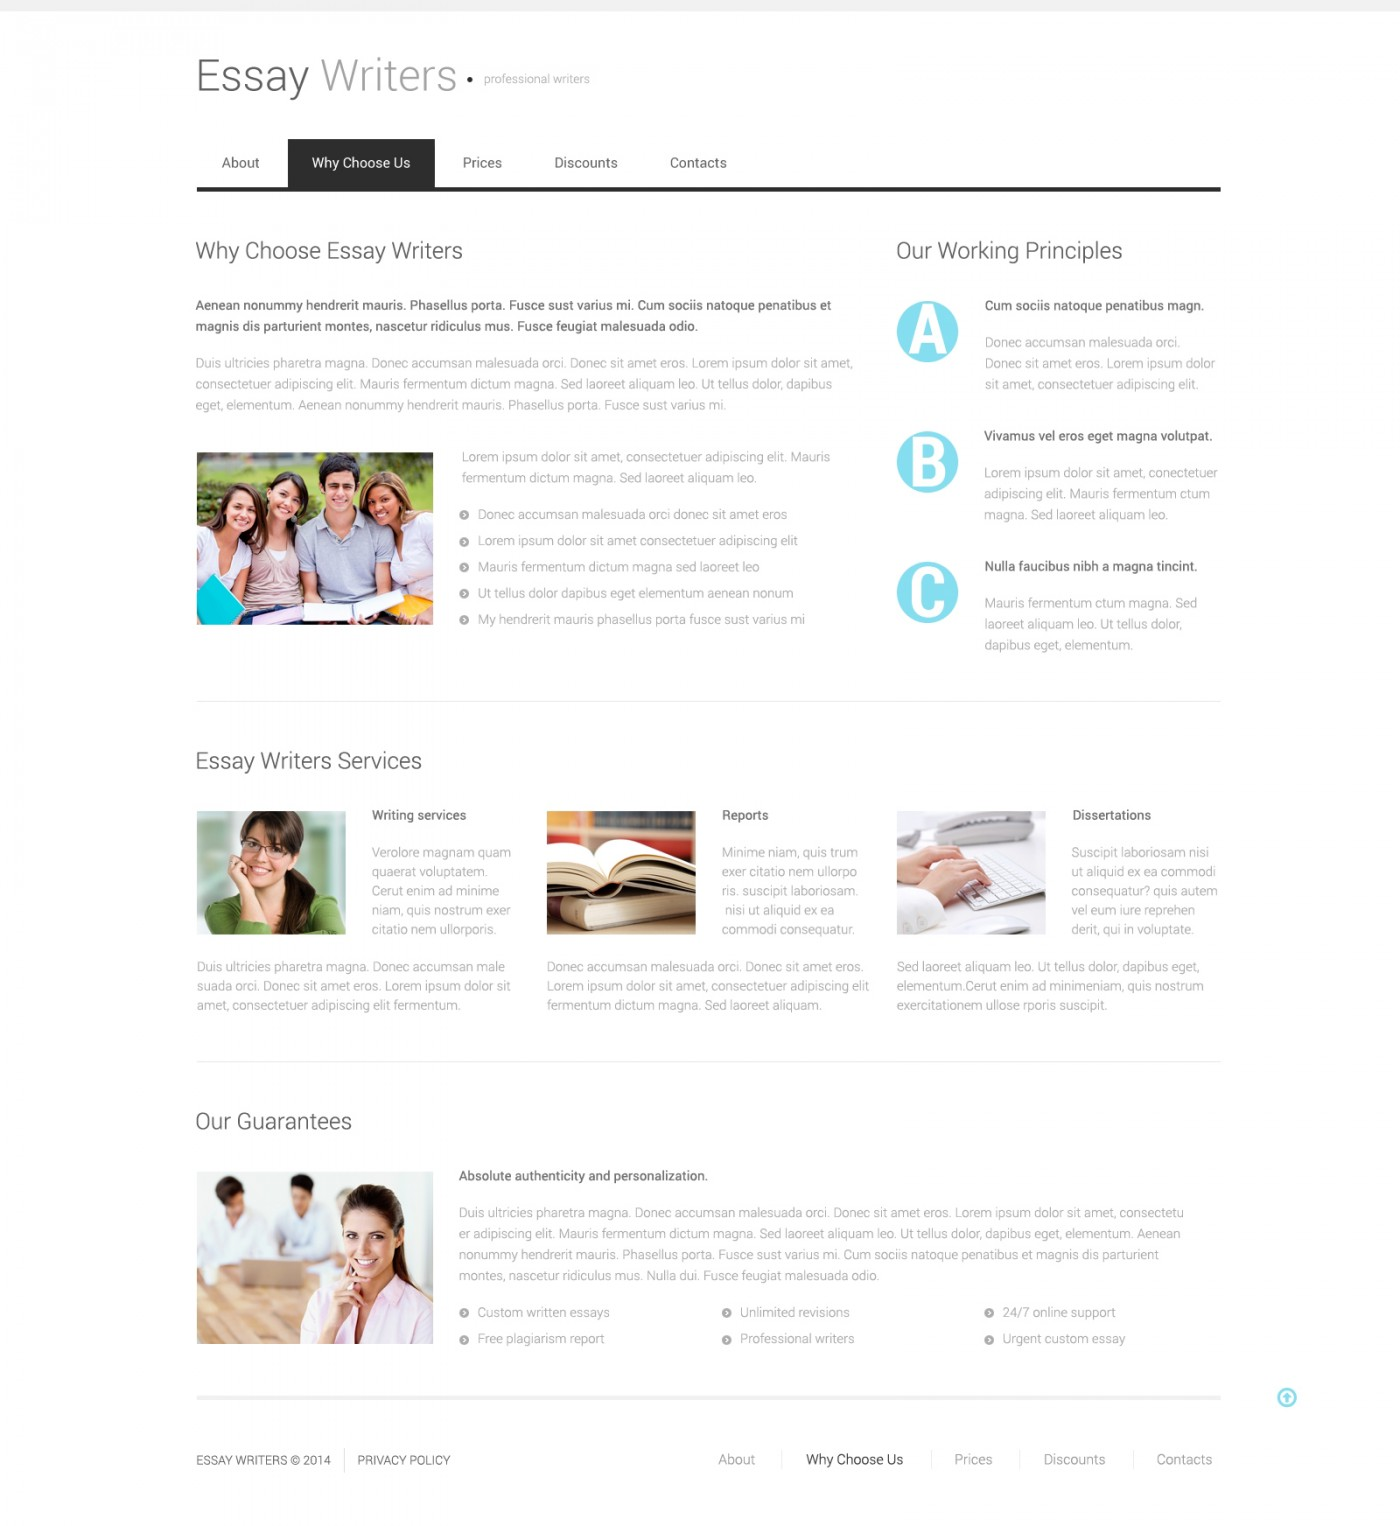 002 Essay Writing Website Websites For Template Writers Custom Demo Ori Amazing Reviews Free 1400